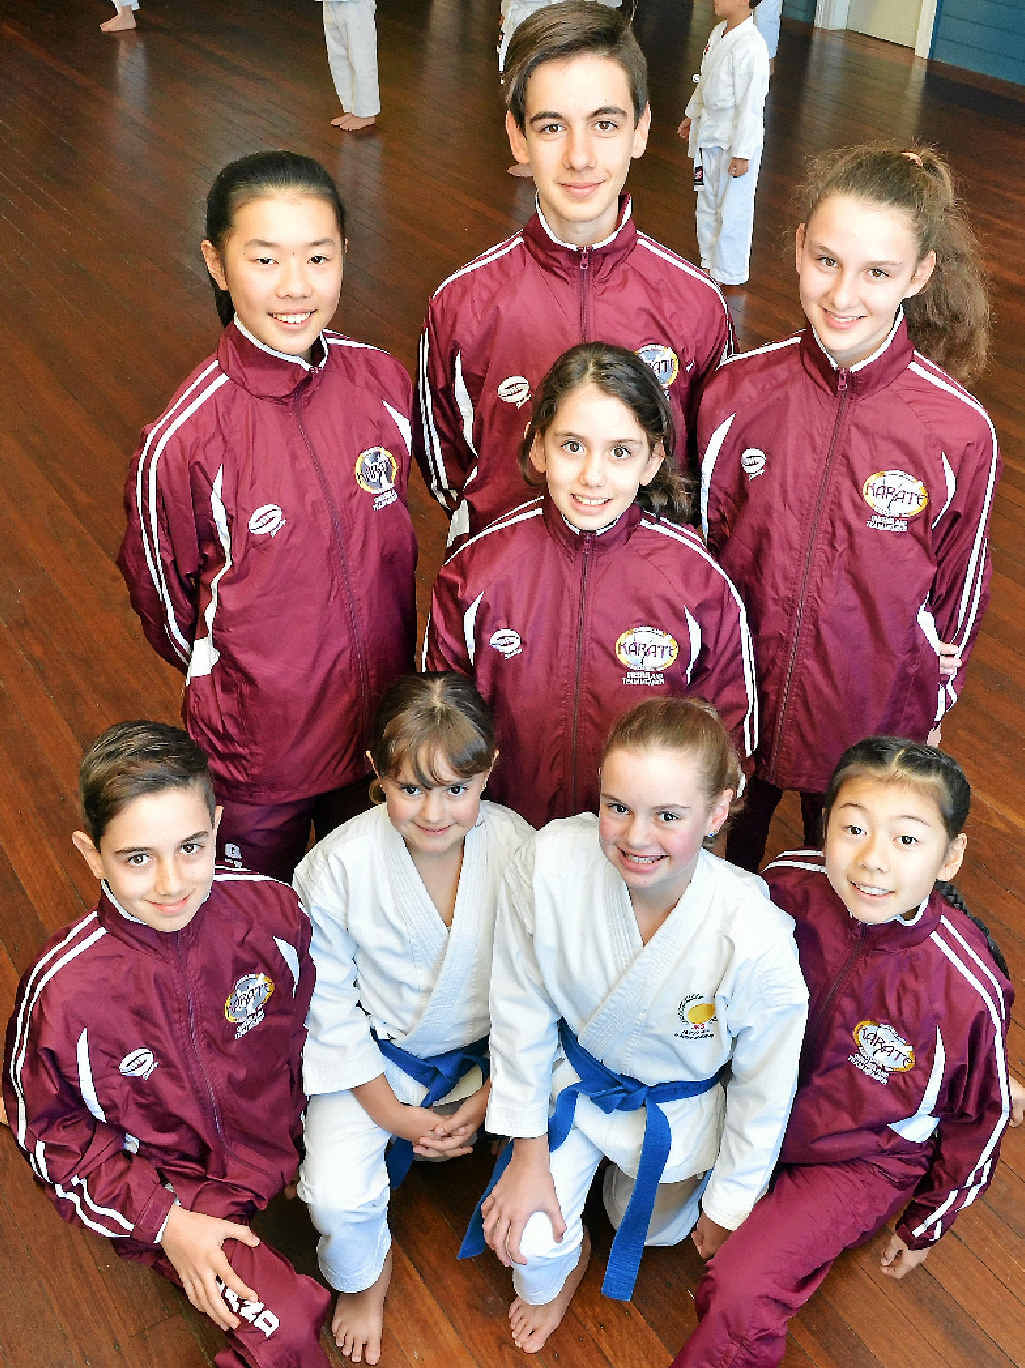 LEFT: Queensland reps (front, from left) Dustin Mostofizadeh, Morgan Butler, Georgia Butler and Sakura Matsuzaki, (centre) Delara Mostofizadeh and (back) Momoka Matsuzaki and David and Daria Mostofizadeh.